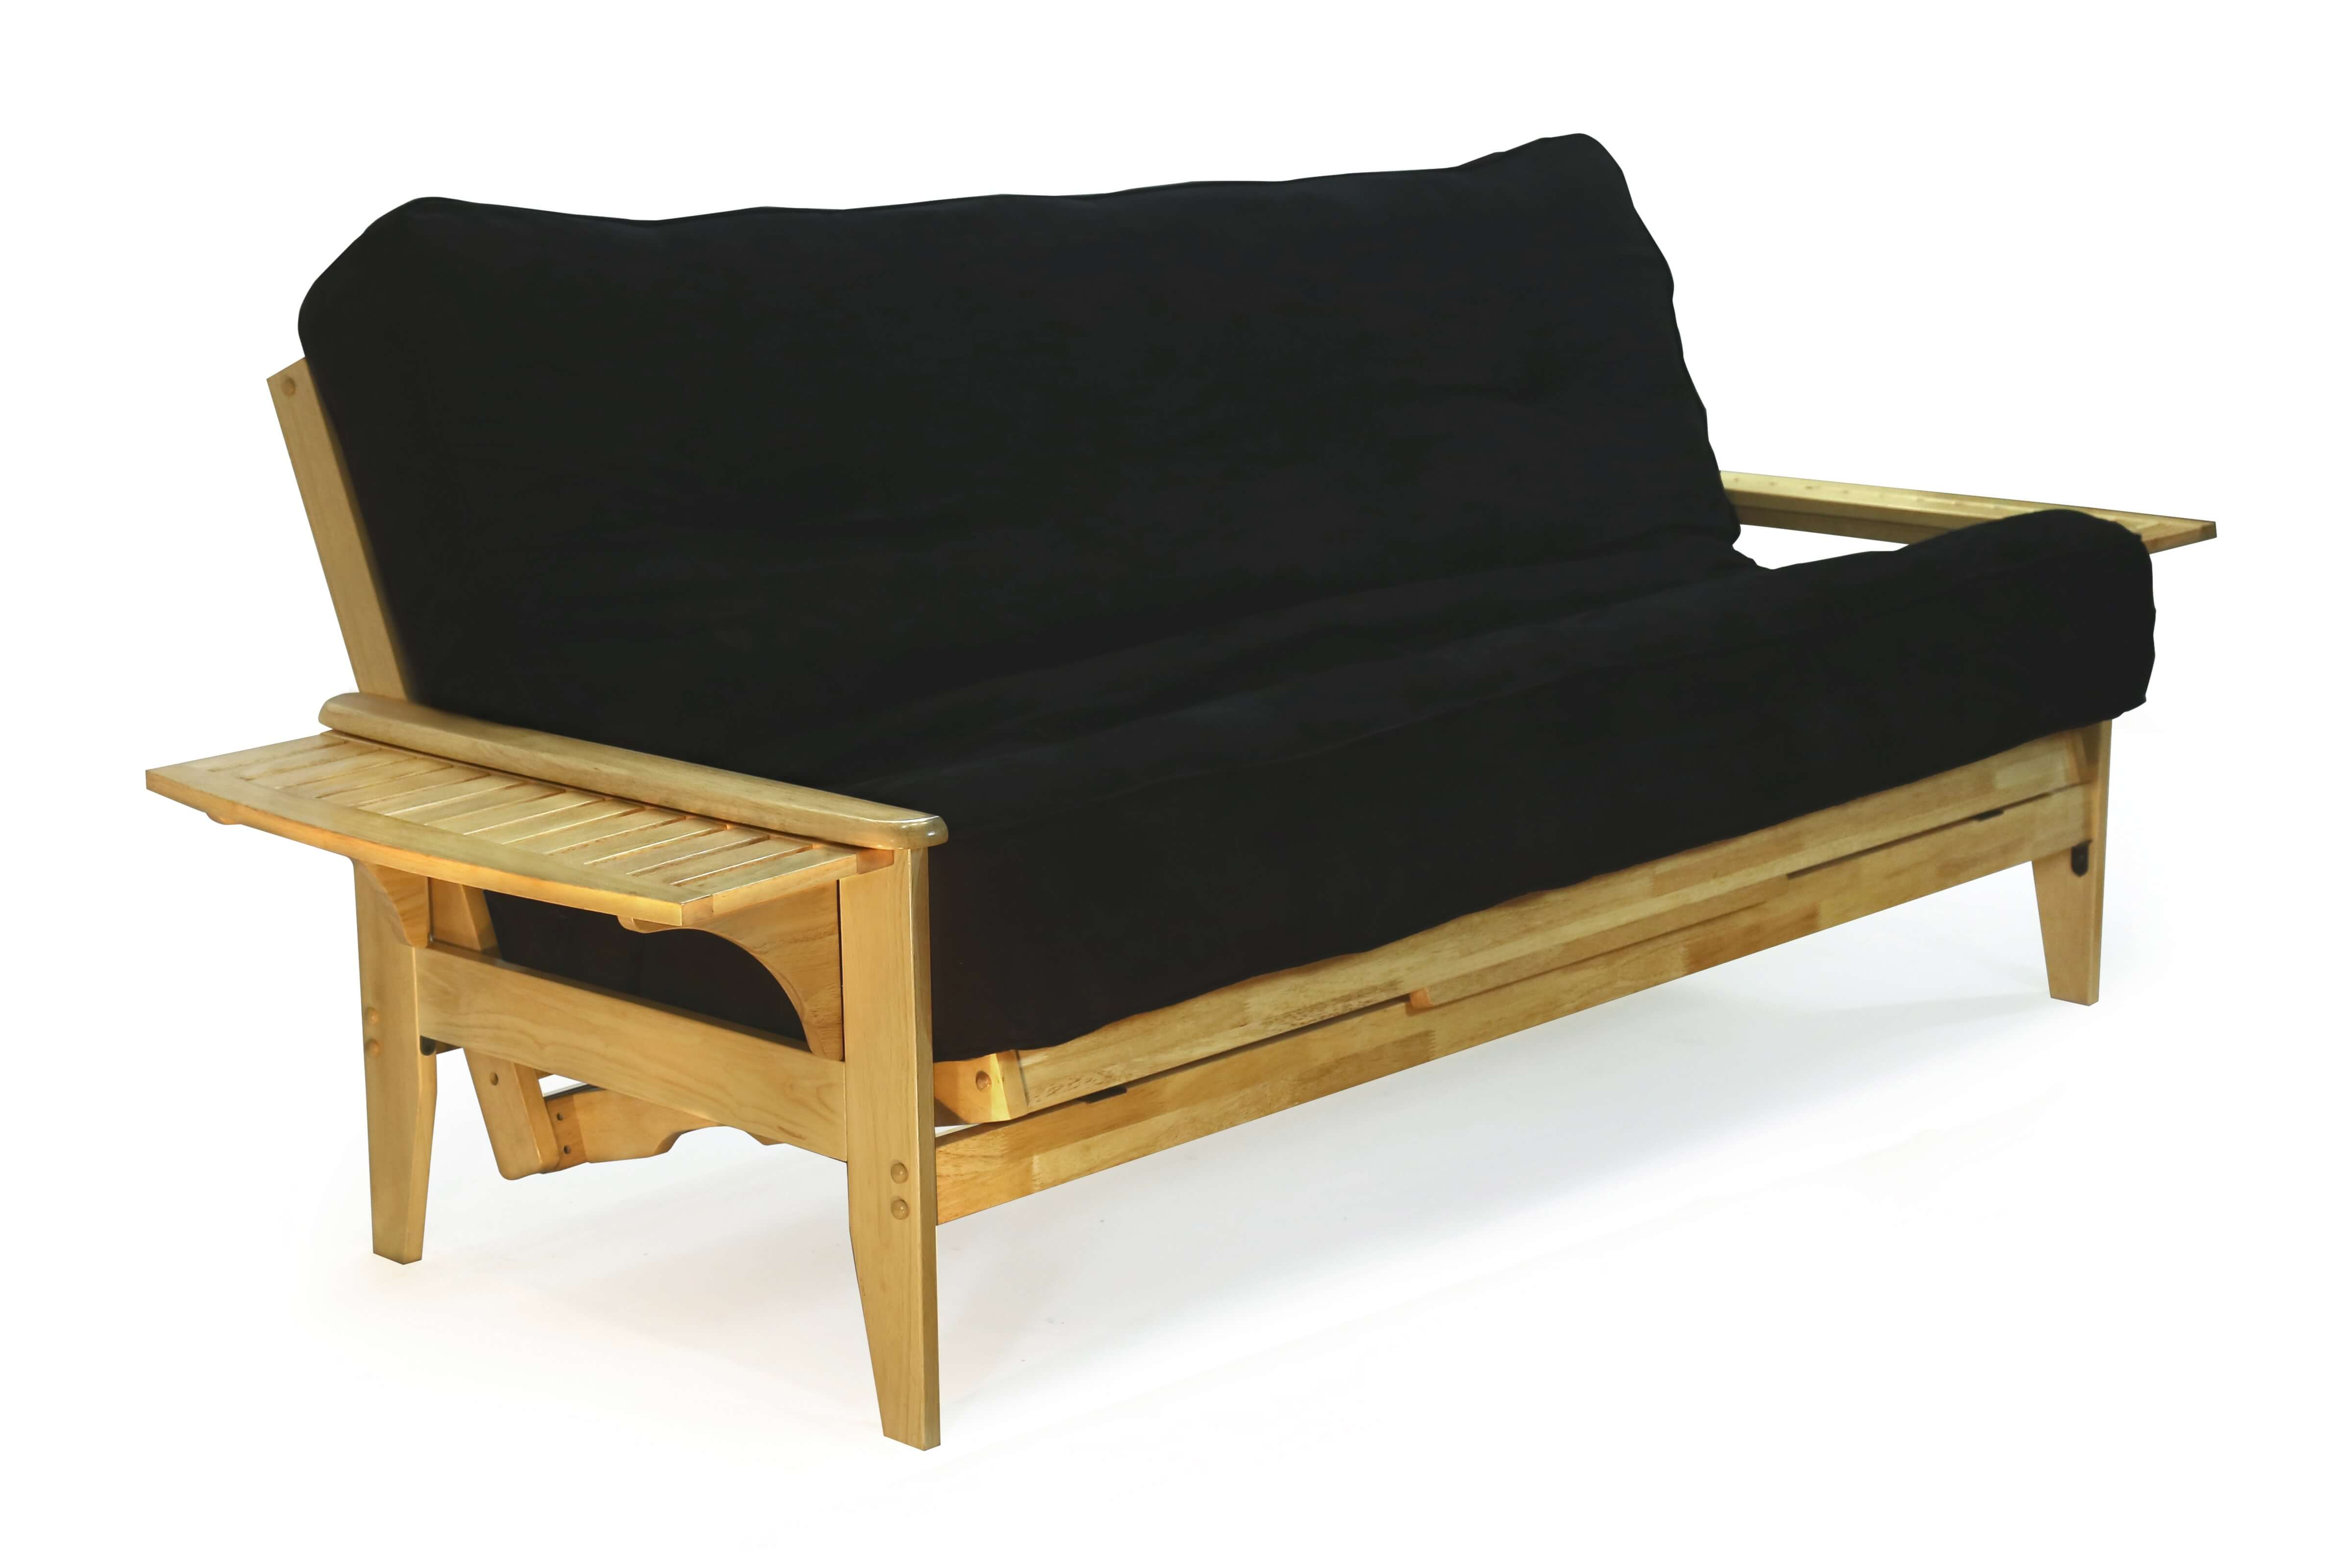 sofa beds naples florida small black uk futon bedrooms and more seattle